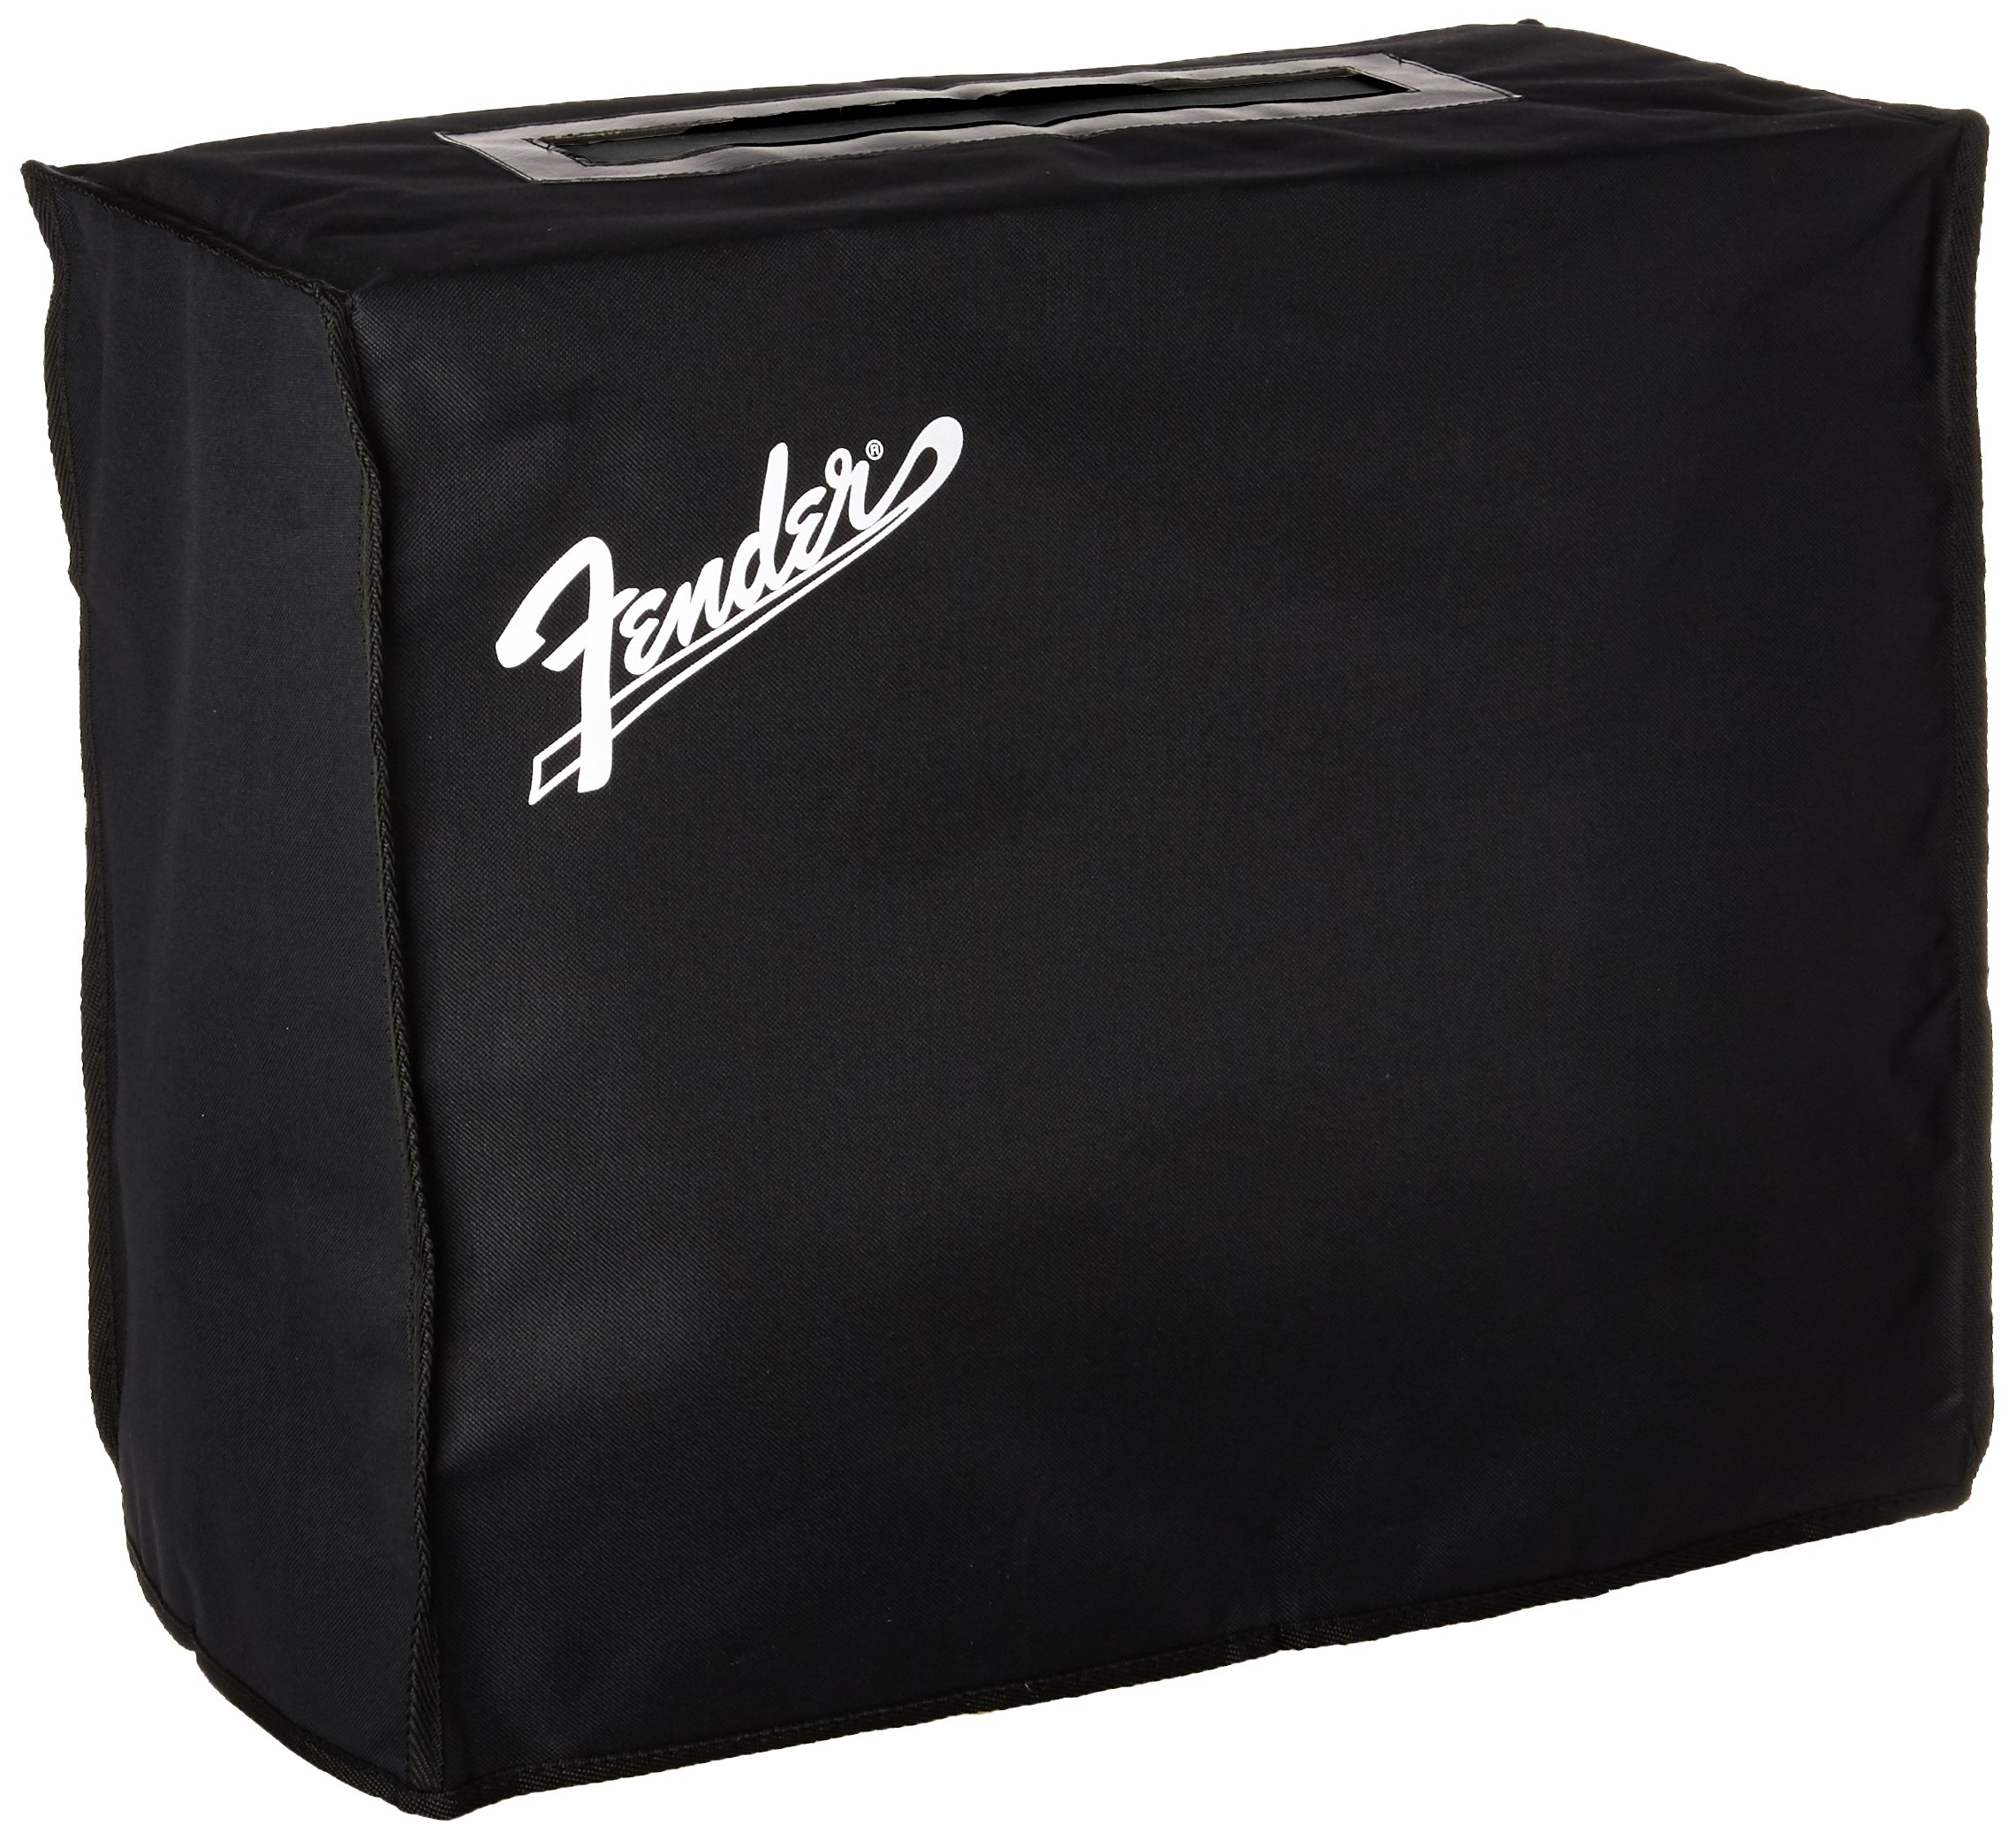 Fender Mustang III Amplifier Cover by Fender